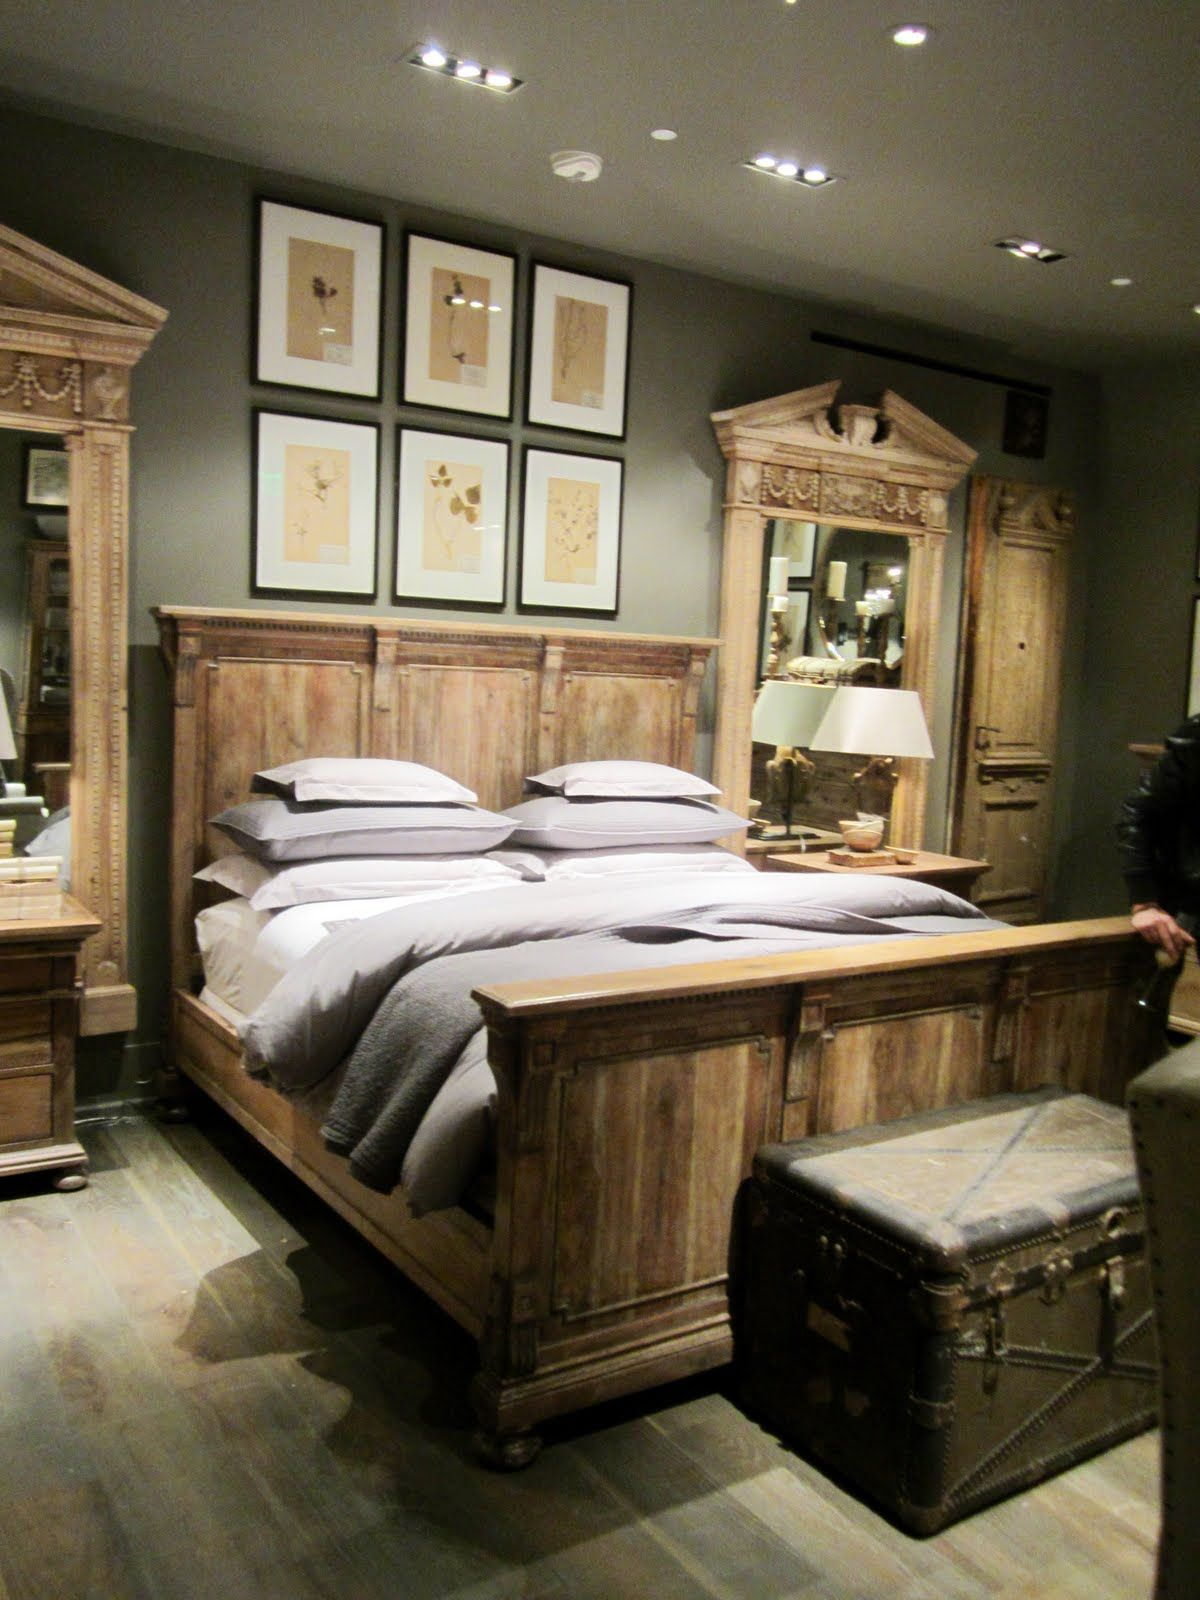 Restoration hardware bedroom - Restoring A Great Brand The Incredible New Look Of Restoration Hardware